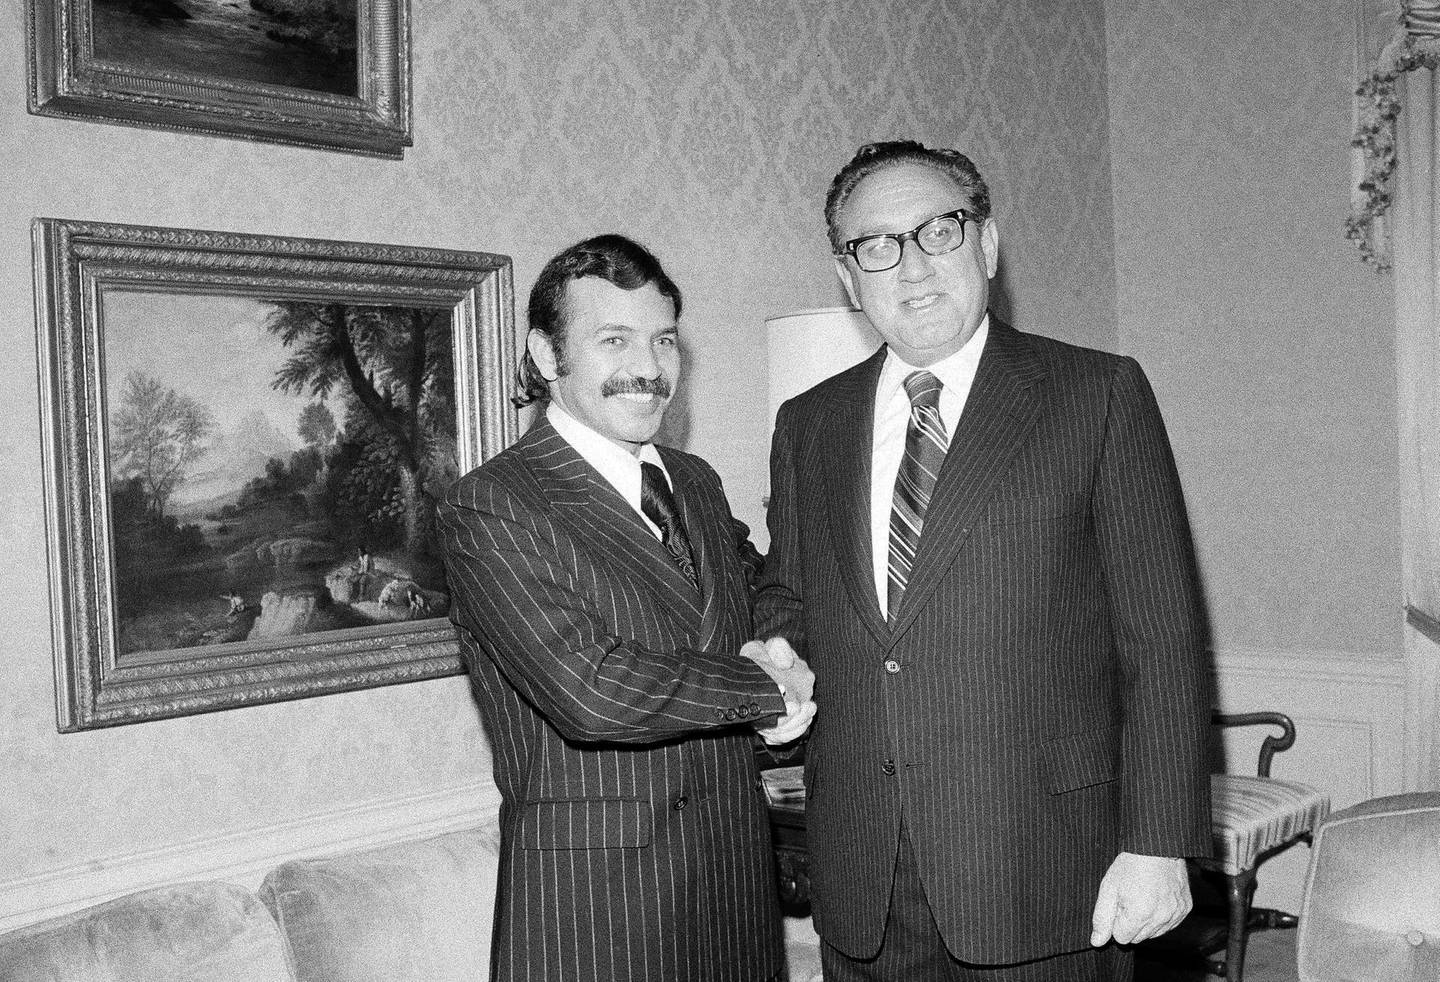 FILE - In this Oct. 1, 1975 file photo Abdelaziz Bouteflika, left, meets with U.S. Secretary of State Henry Kissinger at the U.S. State Department suite at the Waldorf Astoria Hotel Towers. Algerian President Abdelaziz Bouteflika stepped down on Tuesday April 2, 2019 after 20 years in office, and six weeks of massive nationwide protests aimed at pushing him and his much-criticized inner circle from power to create a real democracy in the gas-rich nation. (AP Photo/Dave Pickoff, File)